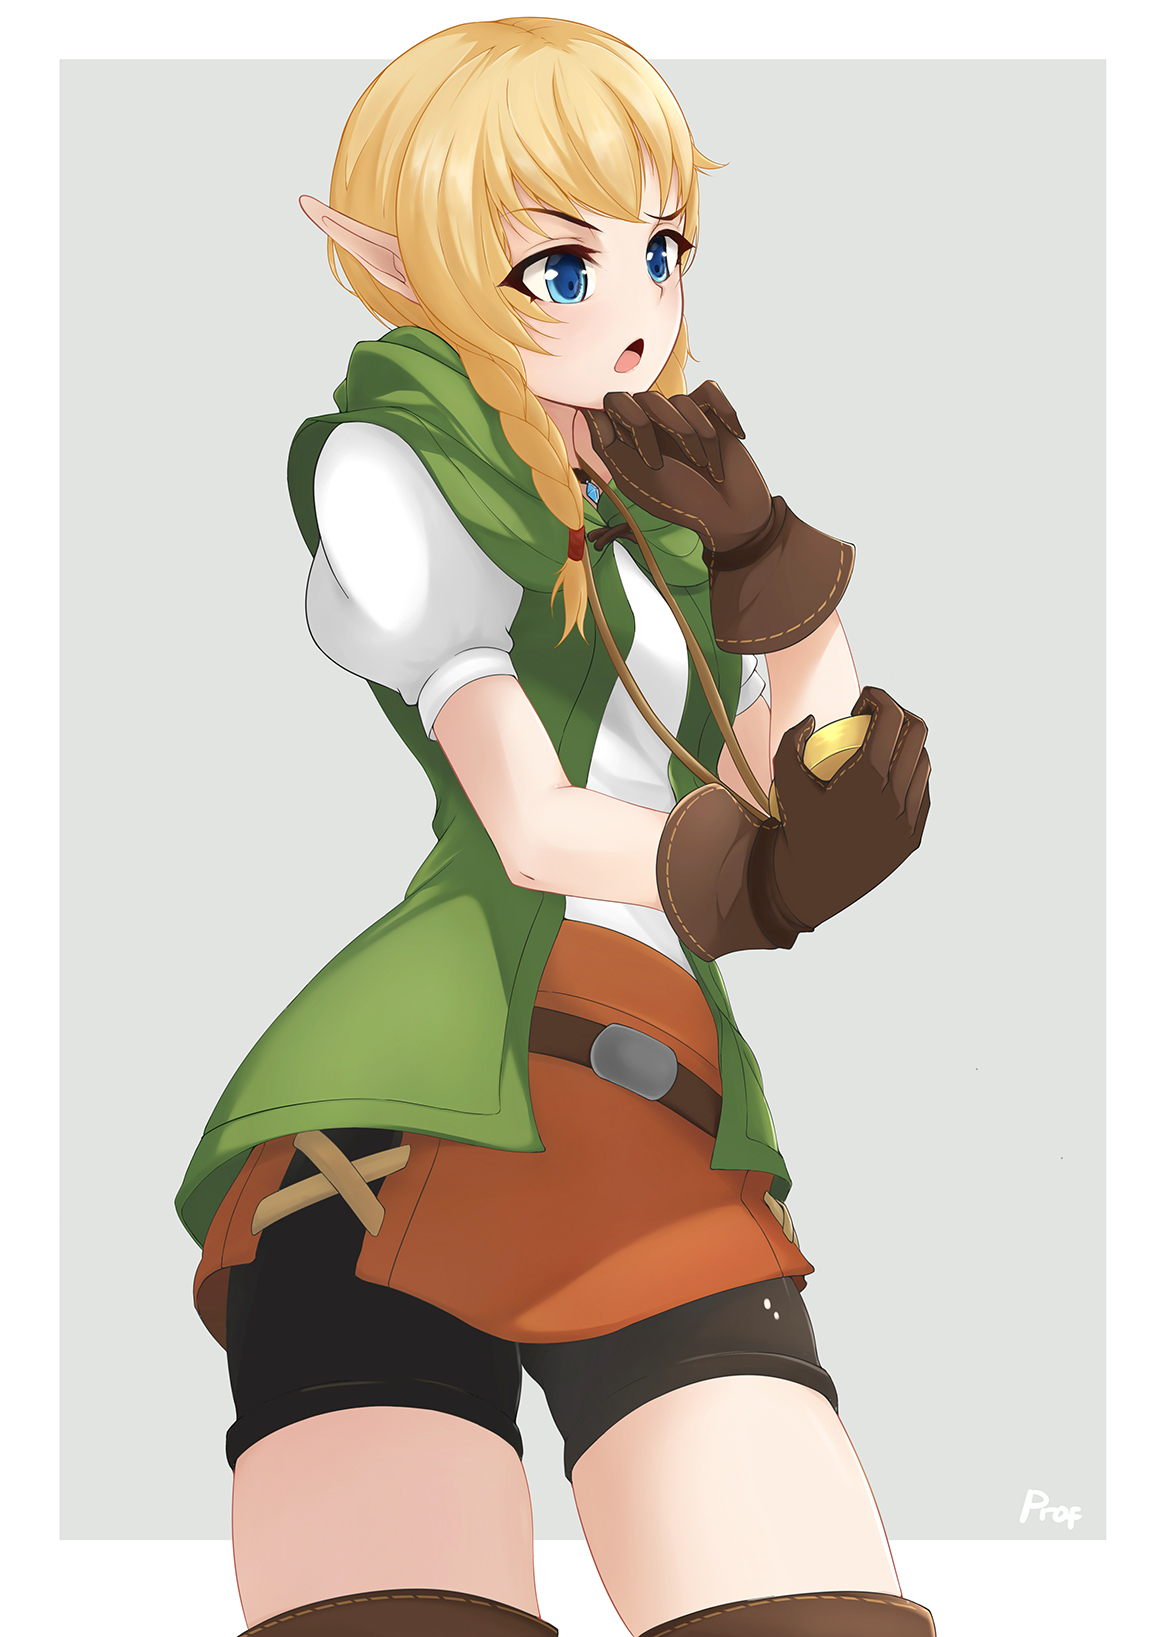 Female link hentai naked butt